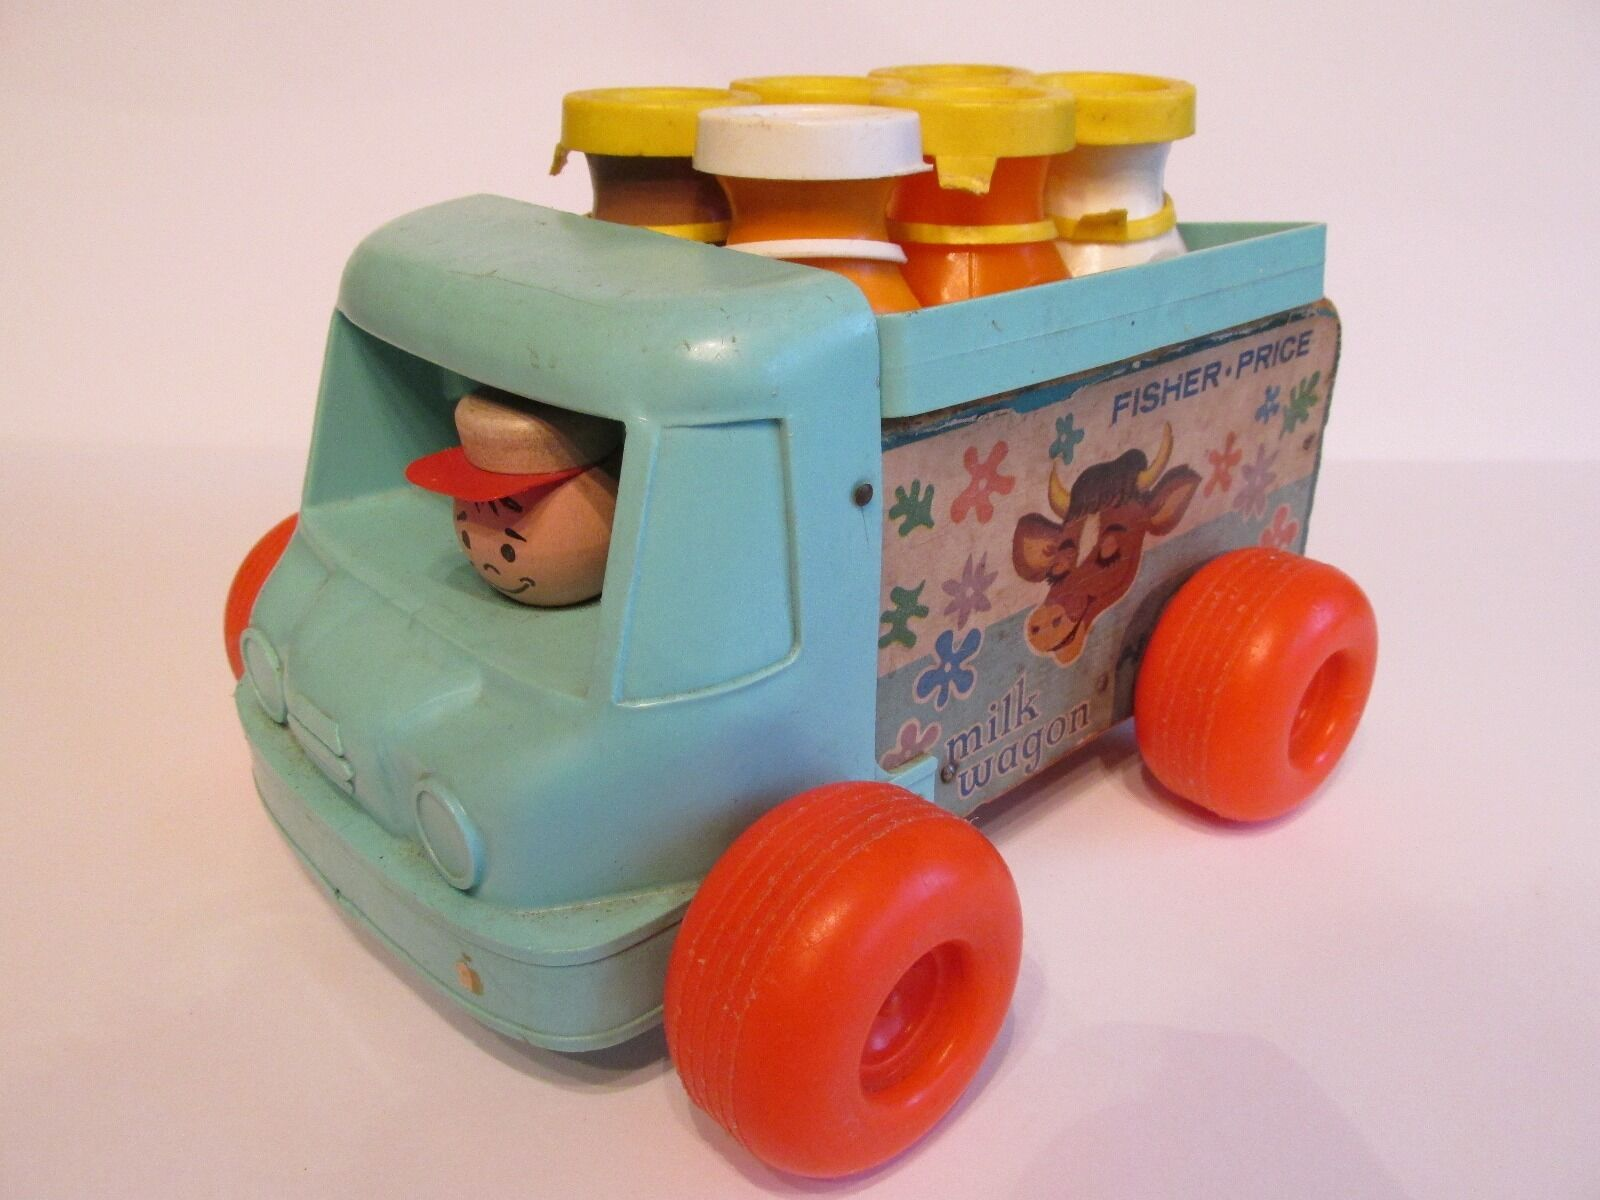 Vintage 1965 Fisher Fisher Fisher Price Milk Wagon Toy 7133a1